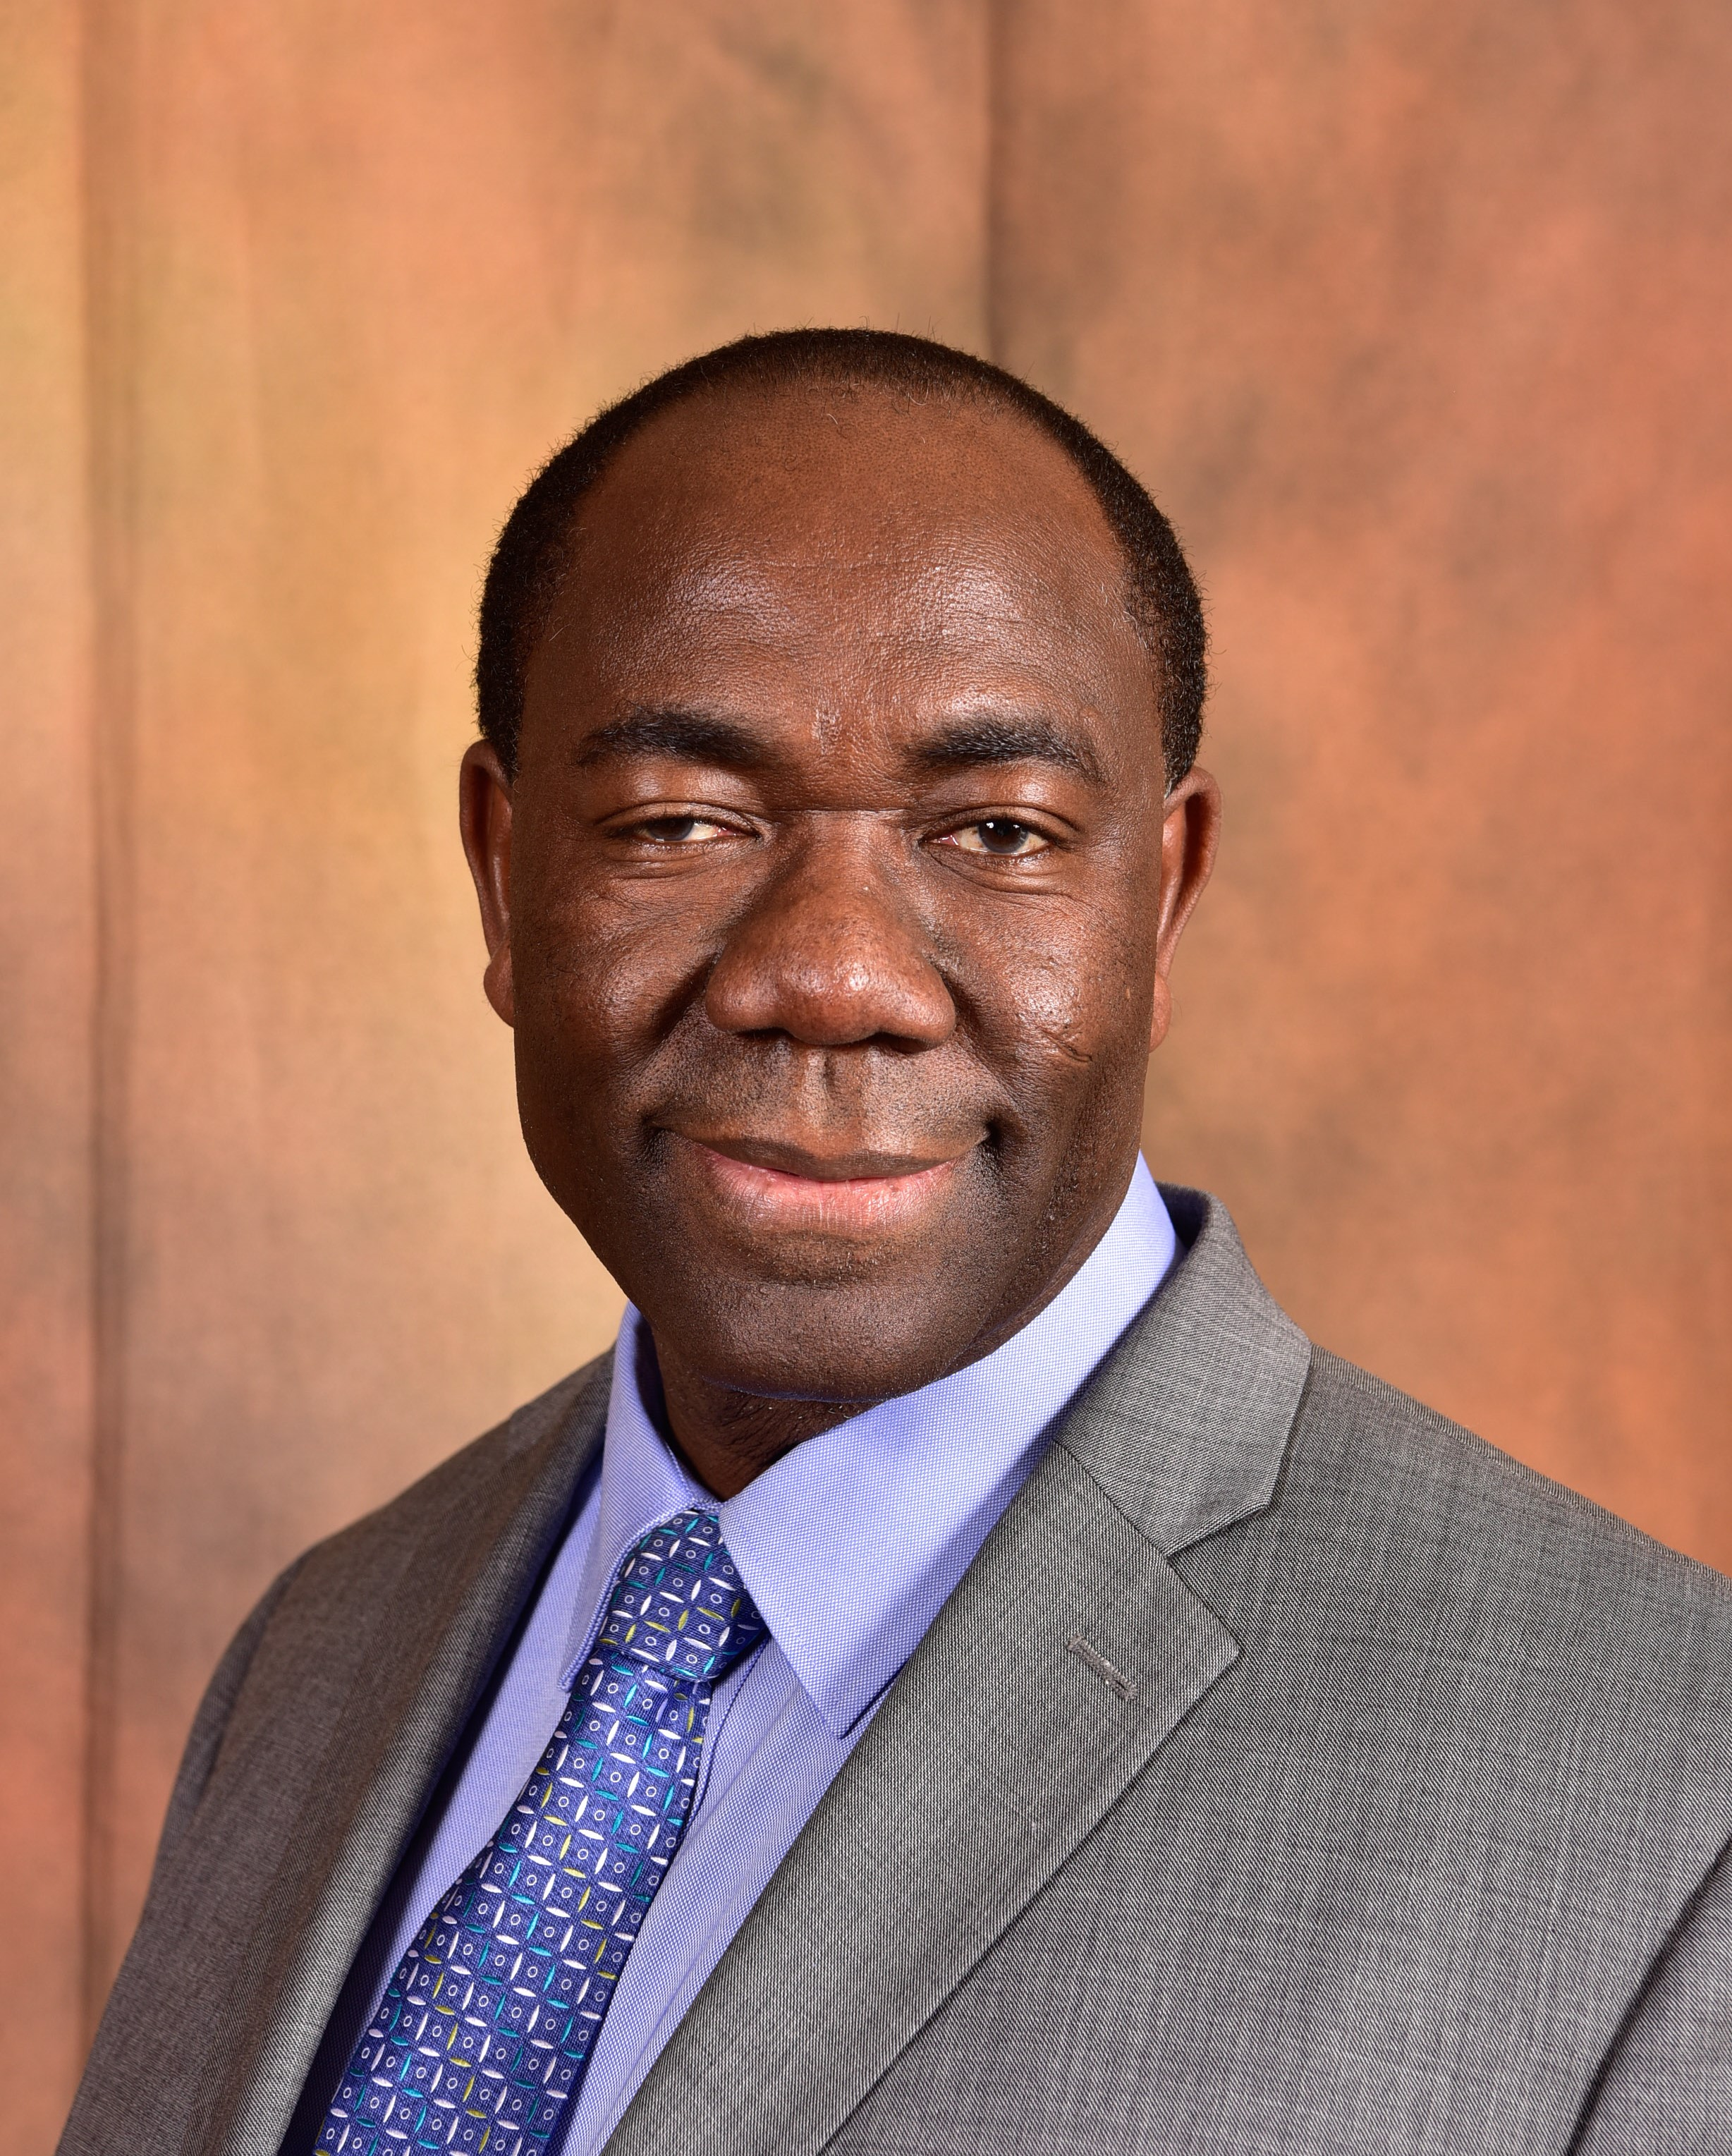 Elder Robert Nyarko